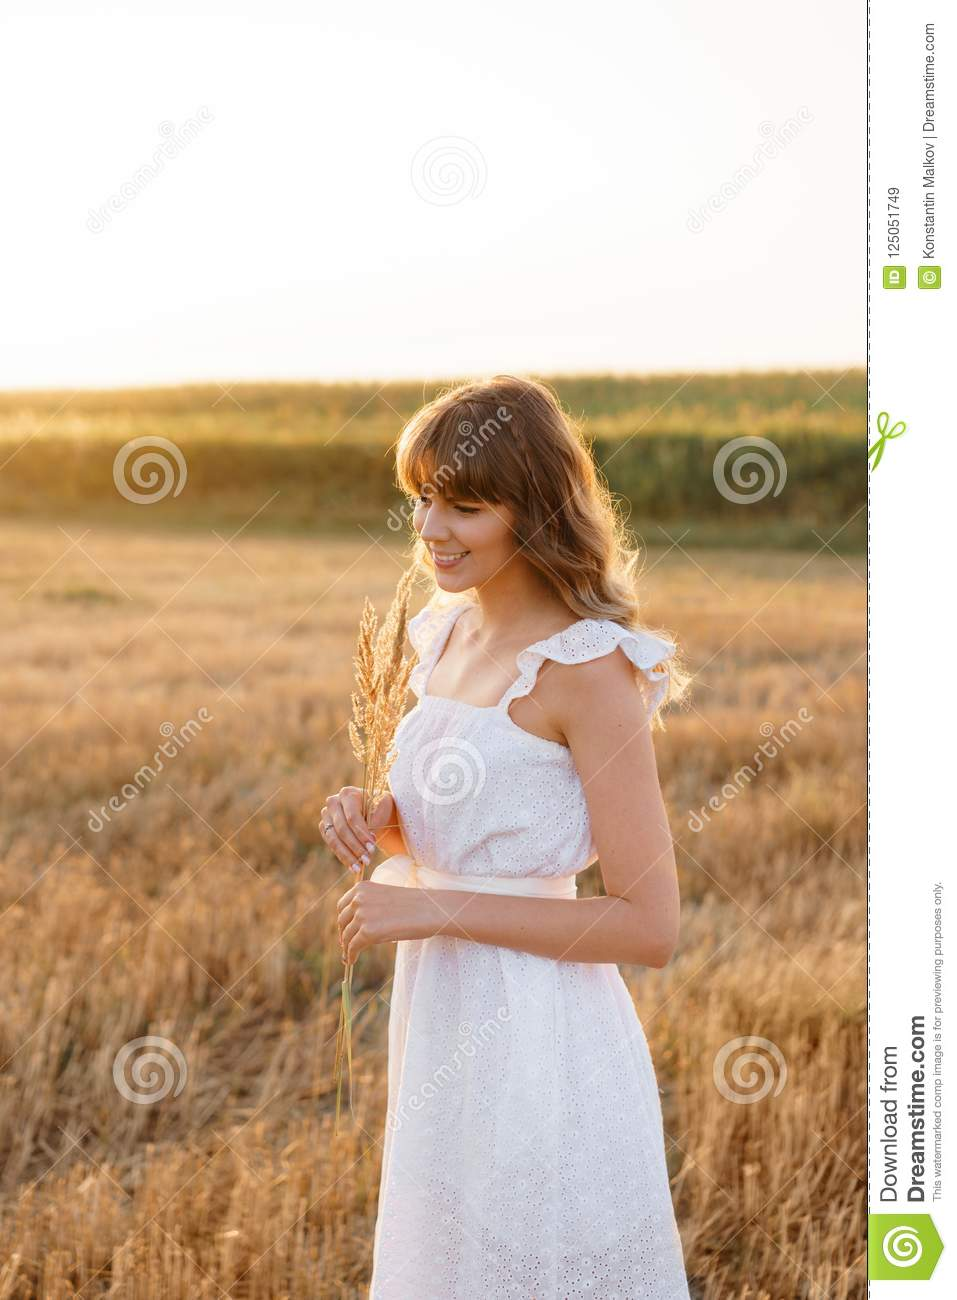 Girl in white dress with spikelets. Woman in field, place for text. Spike and girl in field. Late summer and early